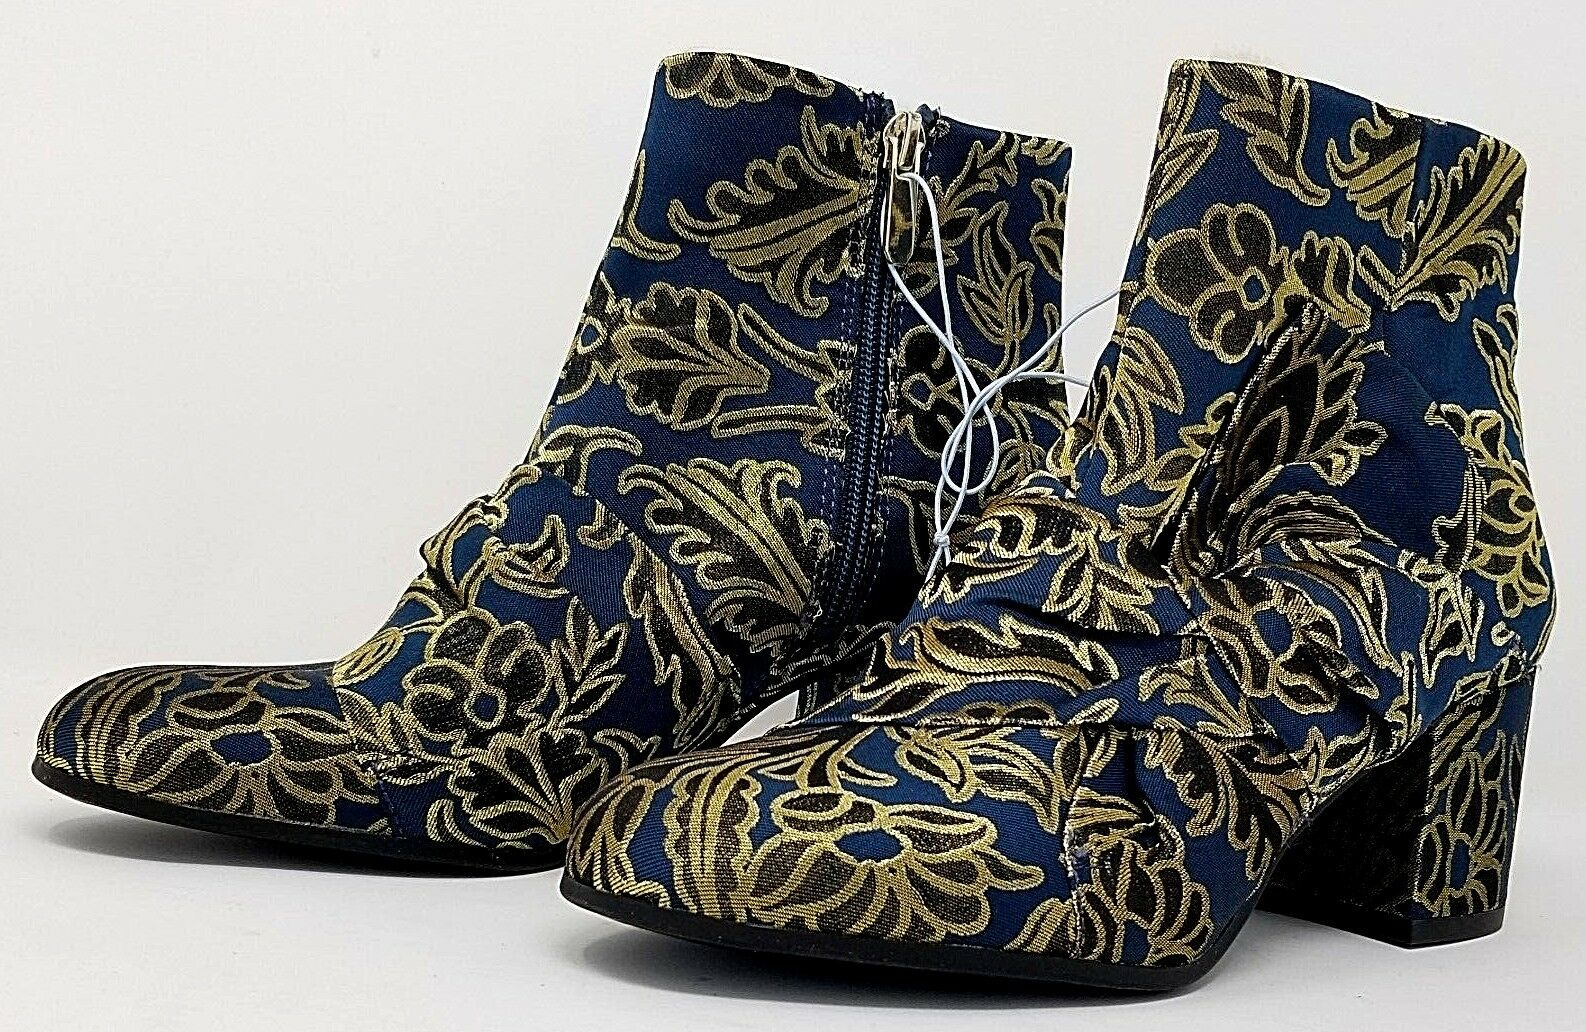 Libby Edelman holiday Veronica womens ankle boots 7 Blue Gold holiday Edelman party zipper close 0b3fed